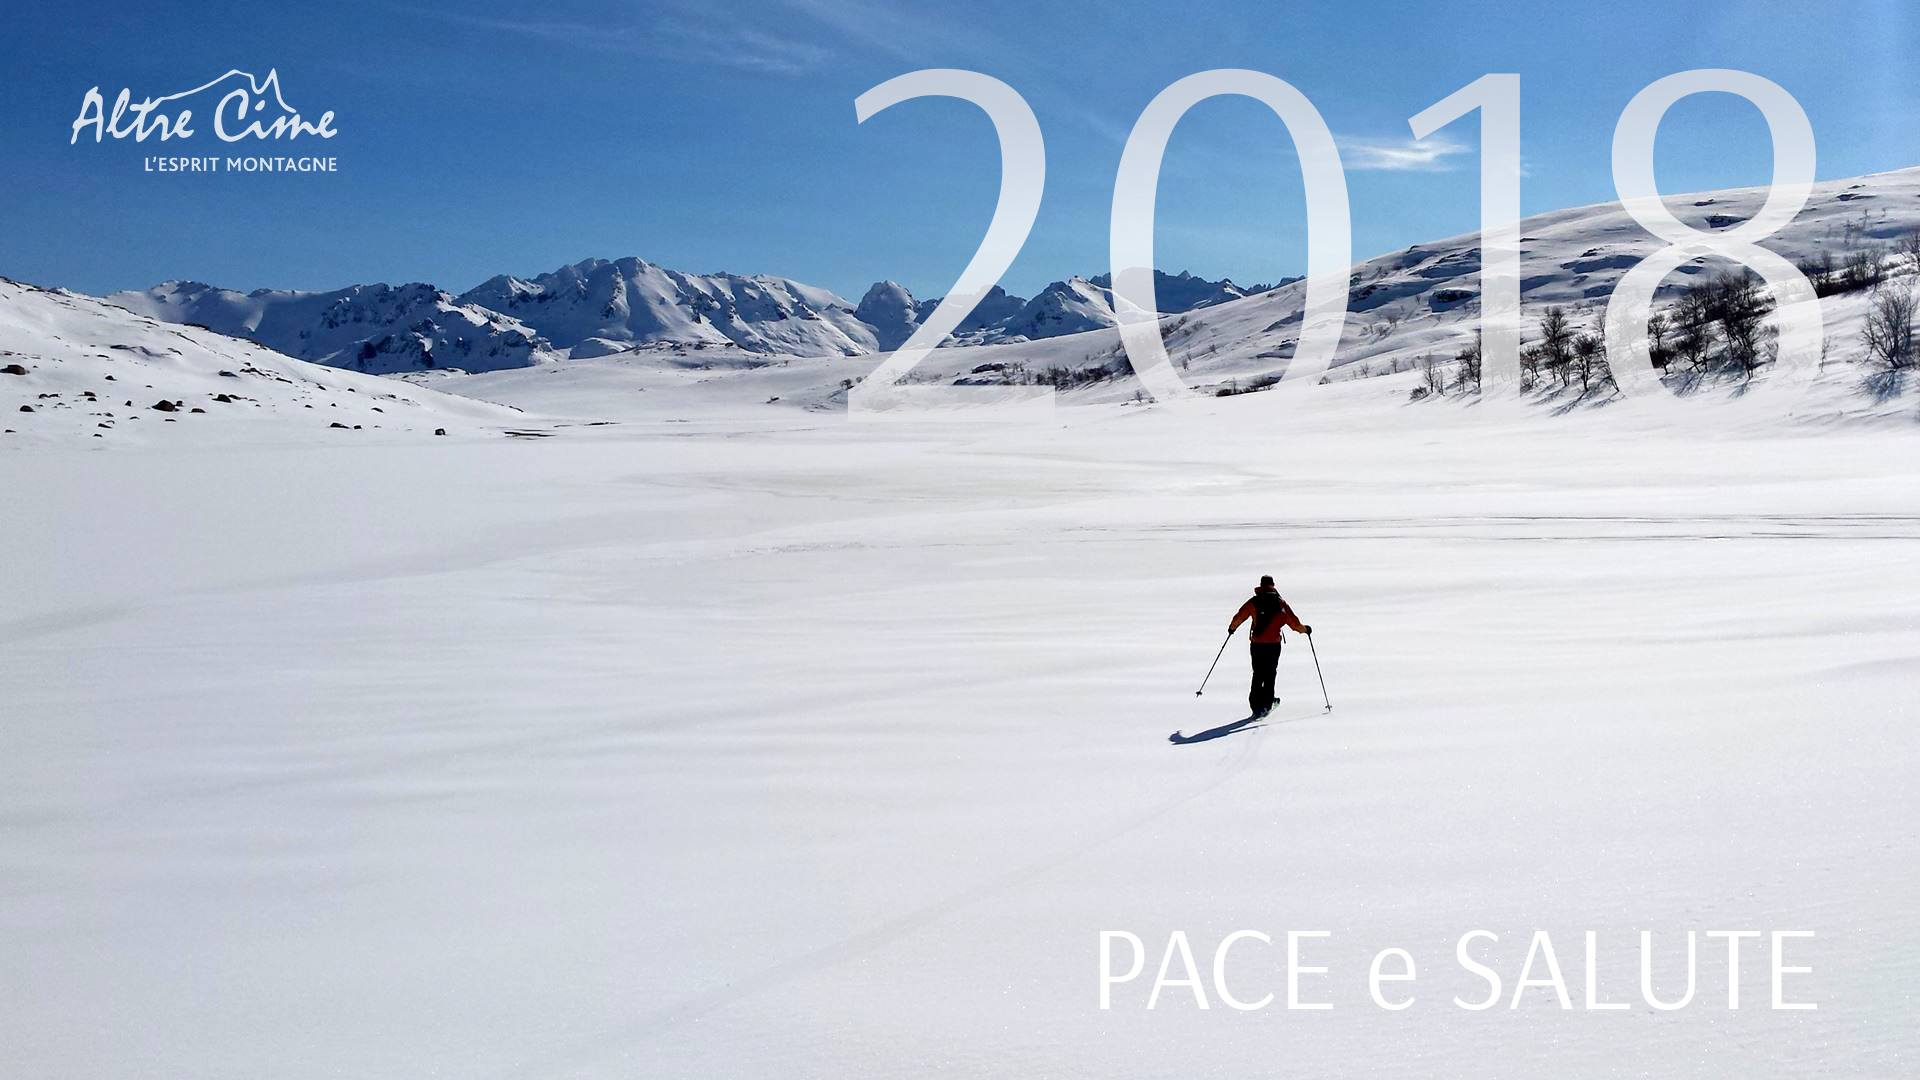 [Voeux_2018] PACE E SALUTE